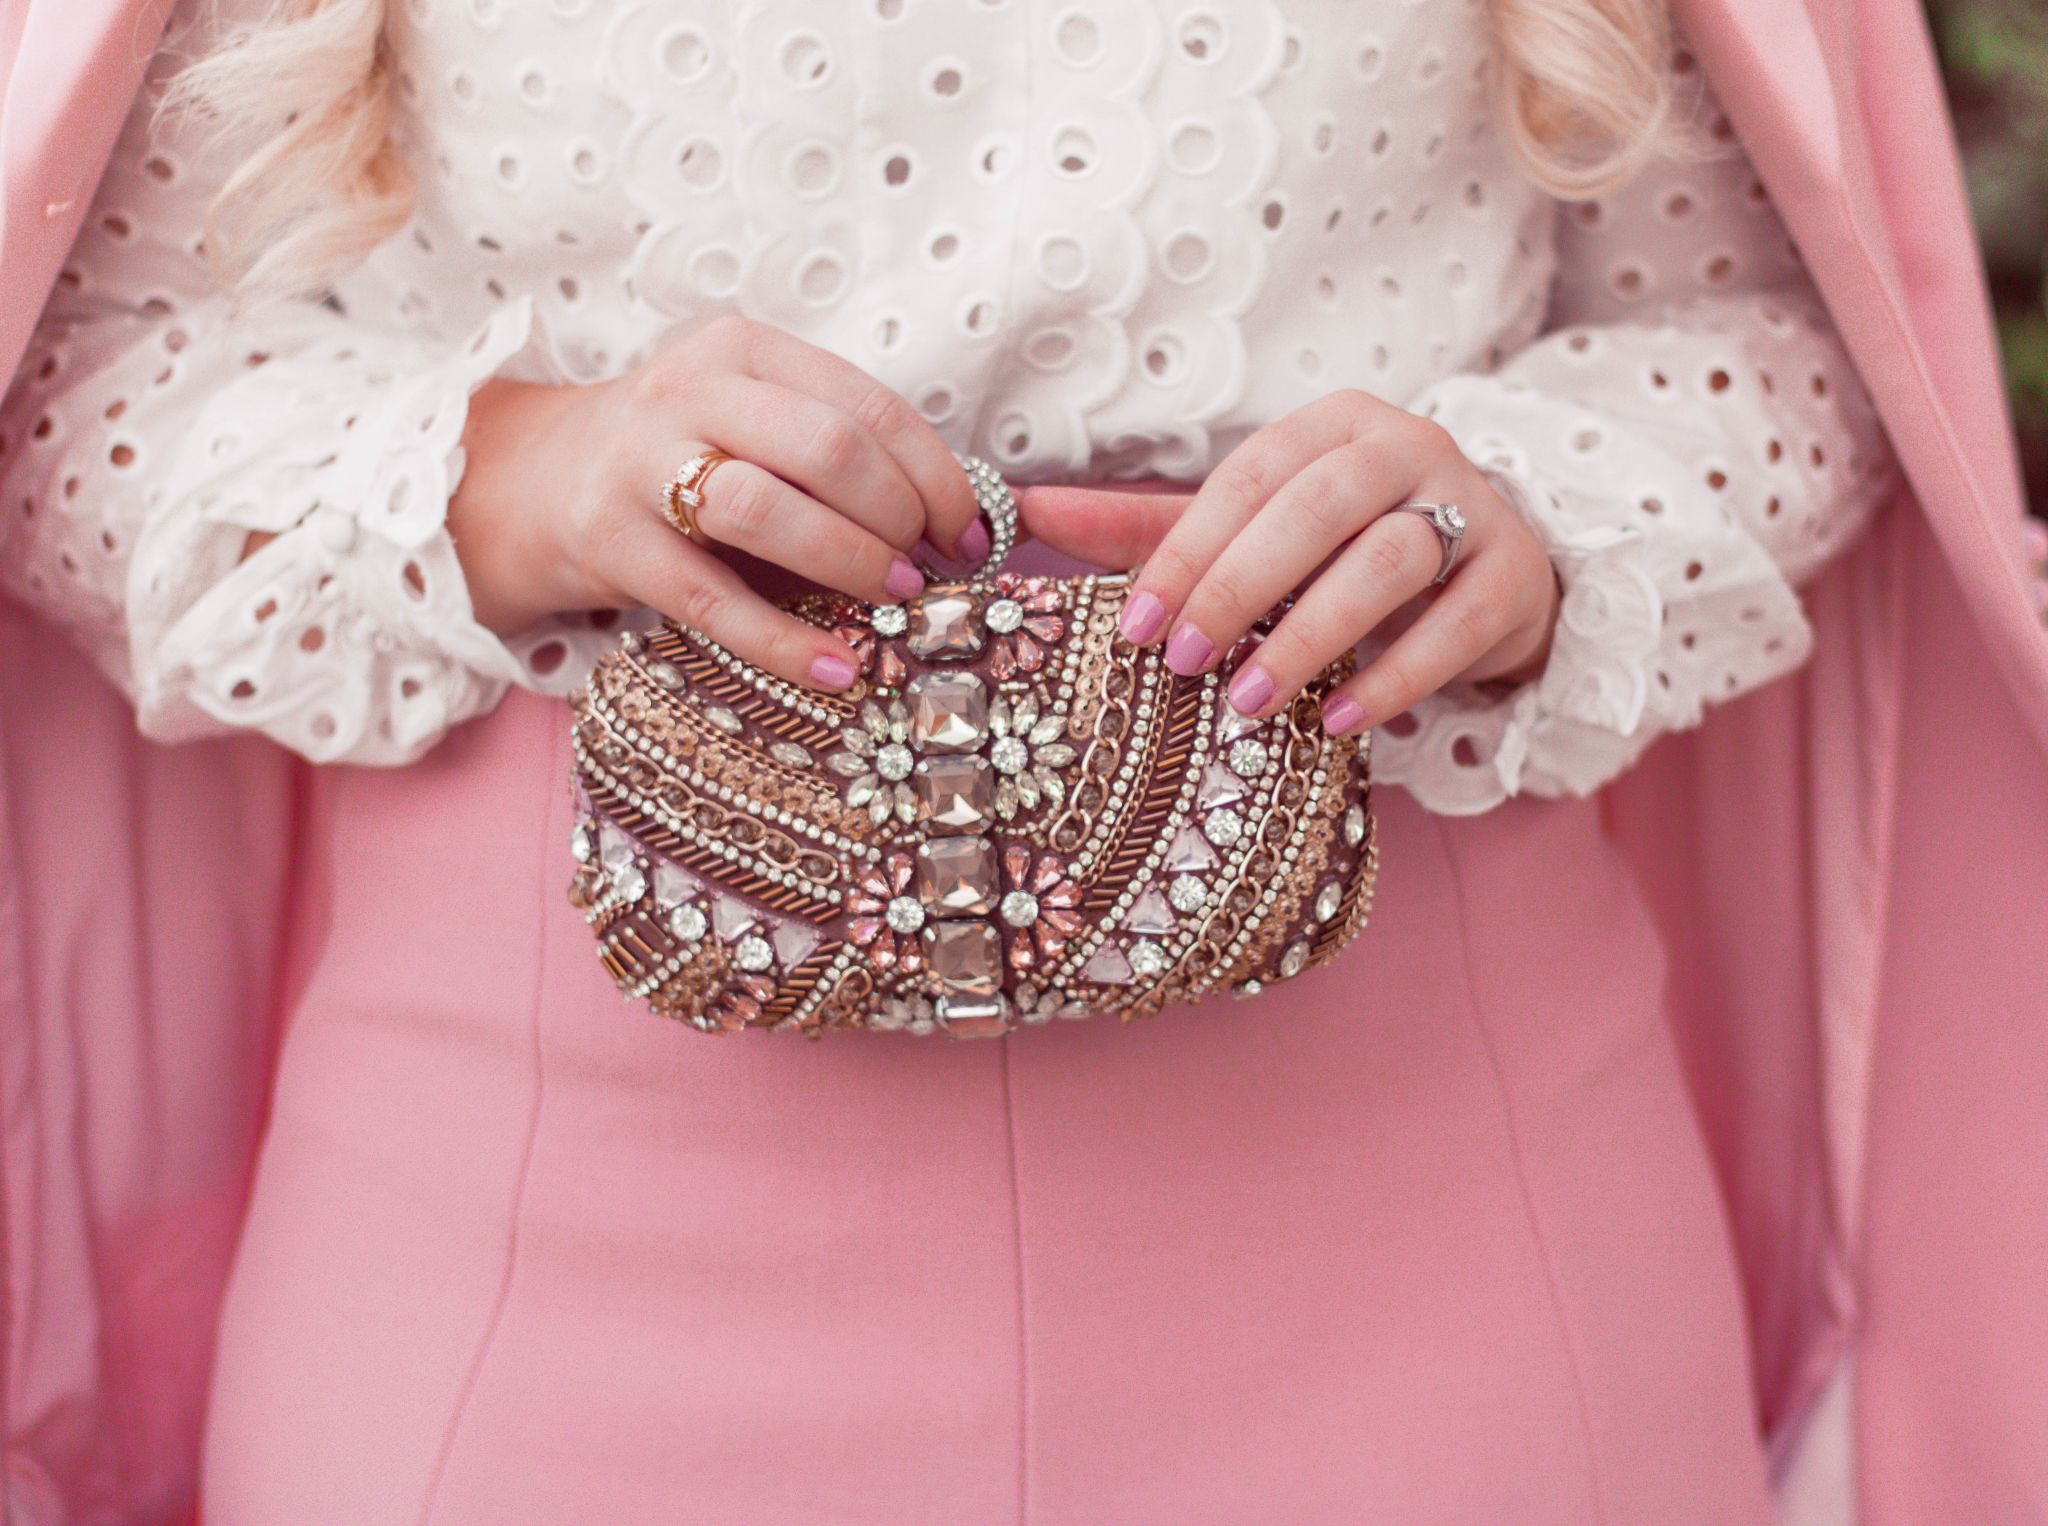 Fashion Blogger Elizabeth Hugen of Lizzie in Lace shares her girly handbag collection including this embellished clutch